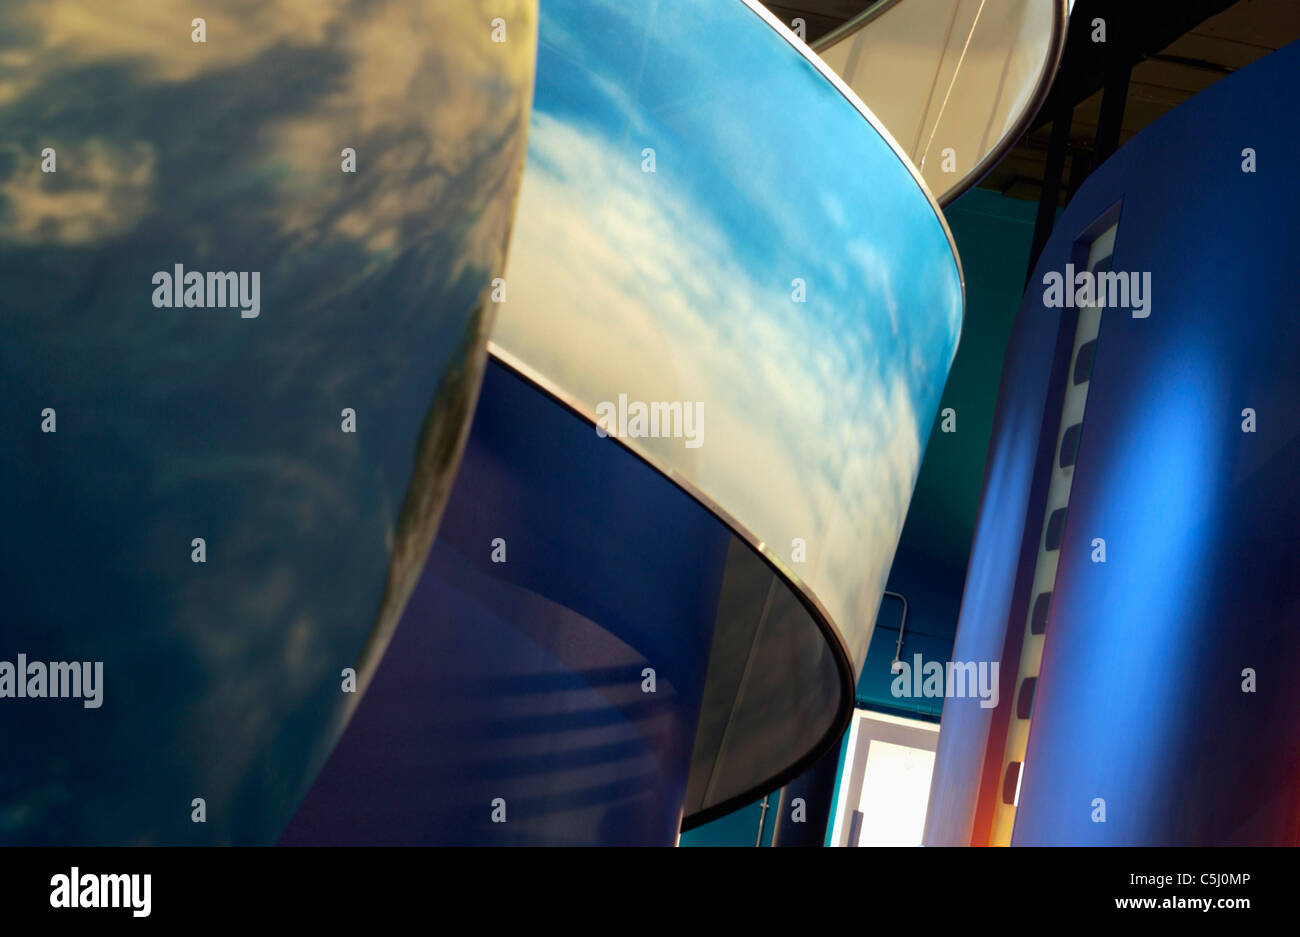 Columns with imagery on in abstract forms Stock Photo